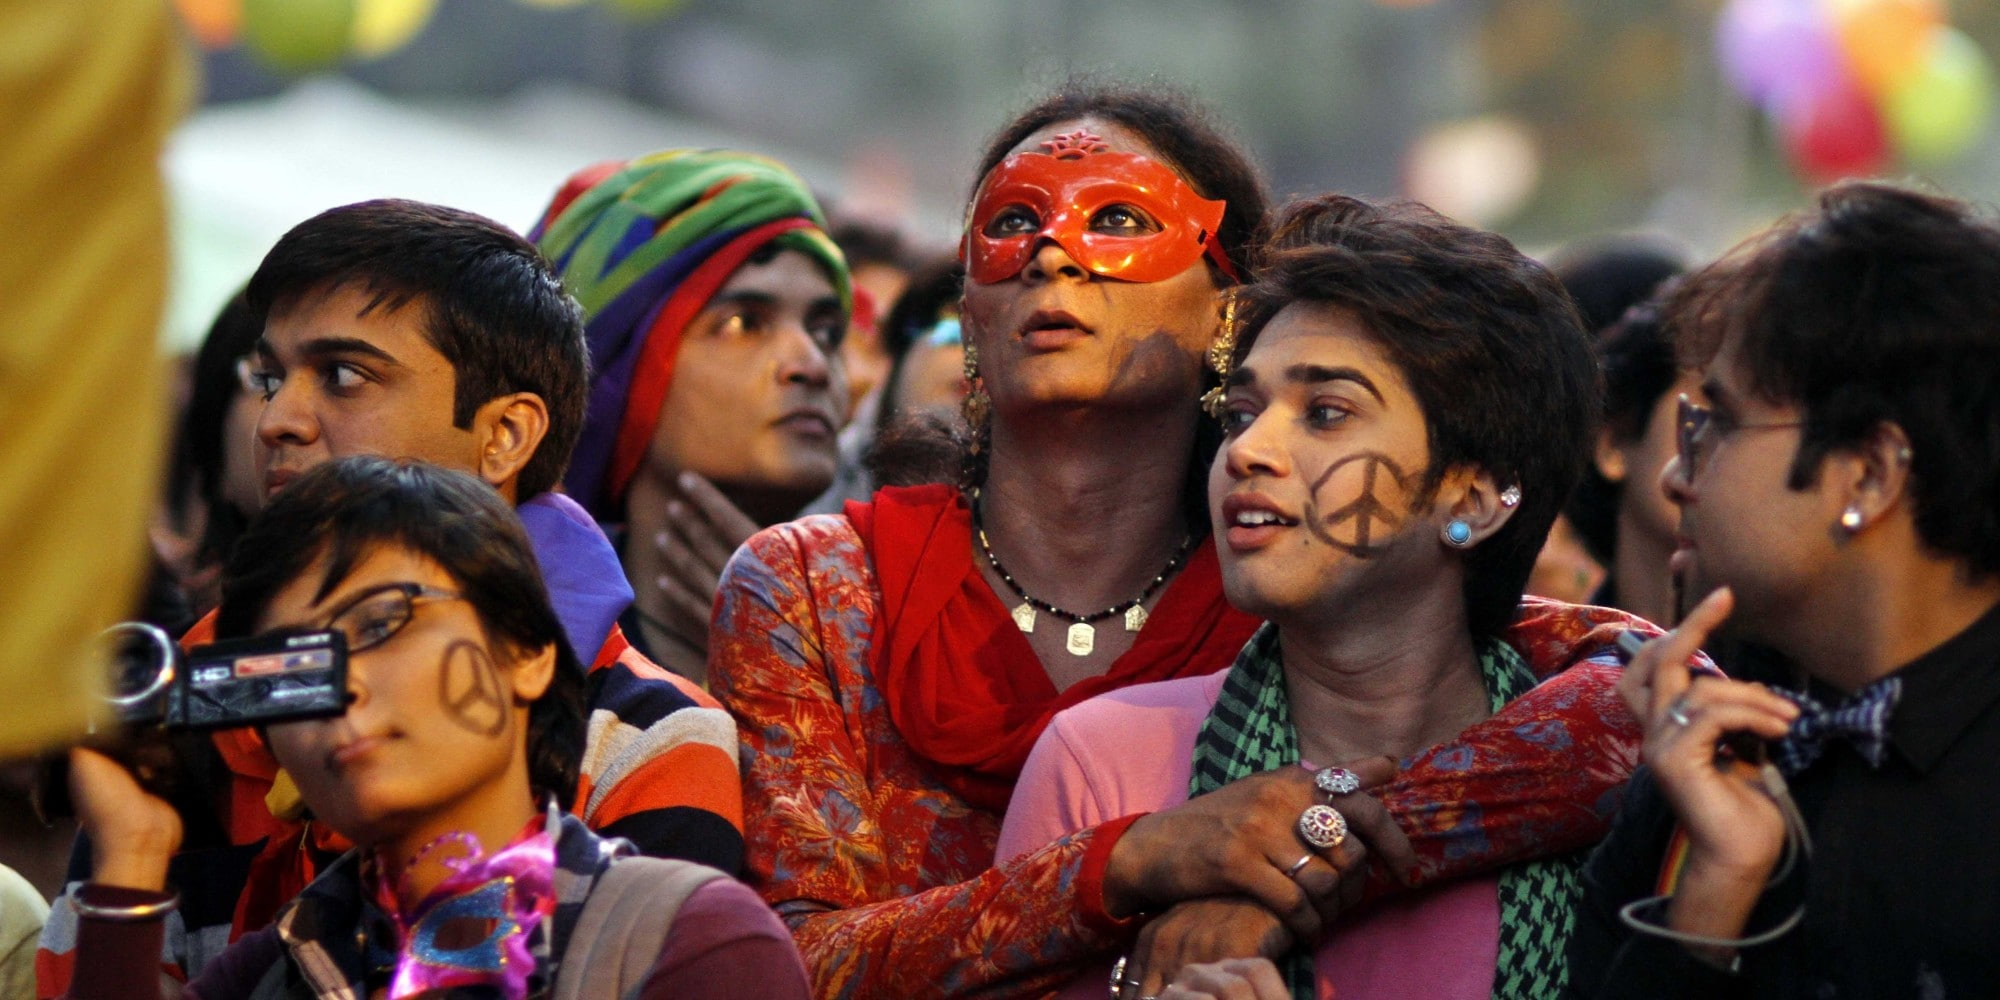 Decriminalizing homosexuality in india